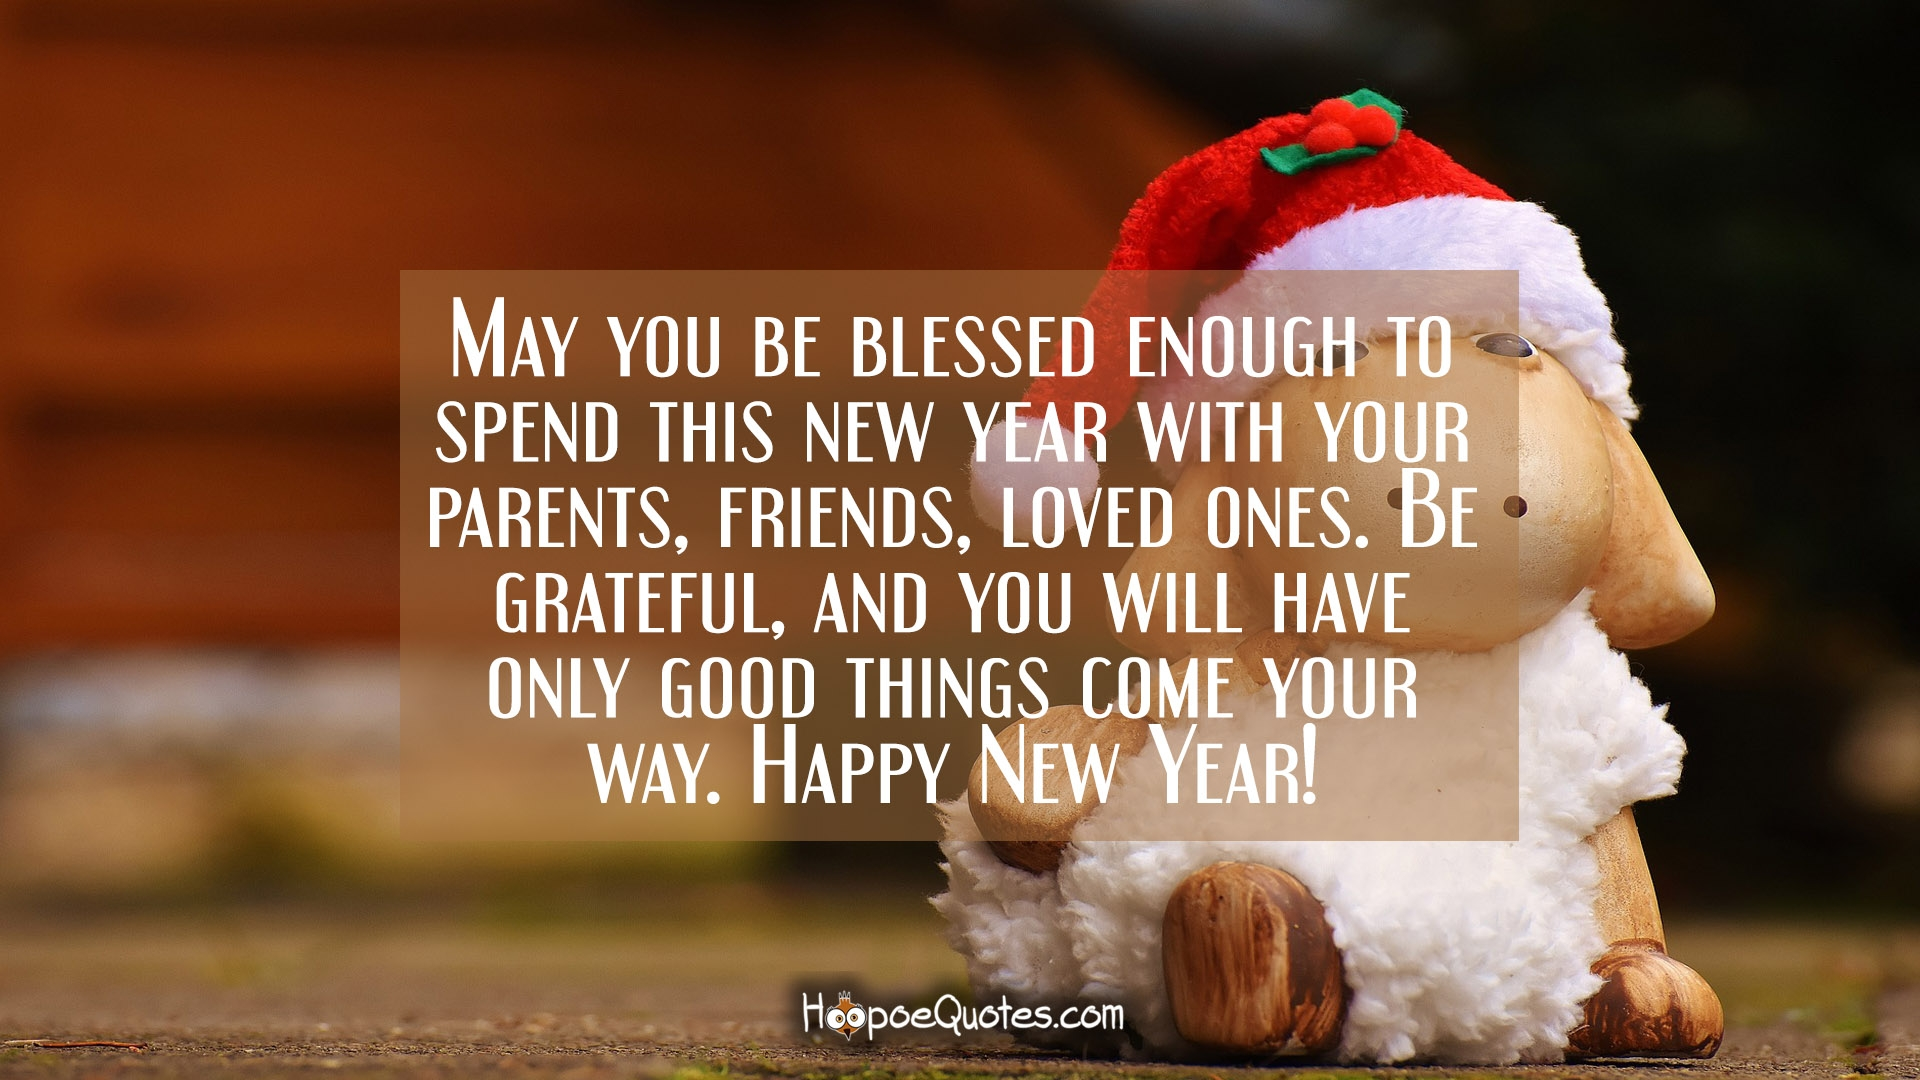 May You Be Blessed Enough To Spend This New Year With Your Parents